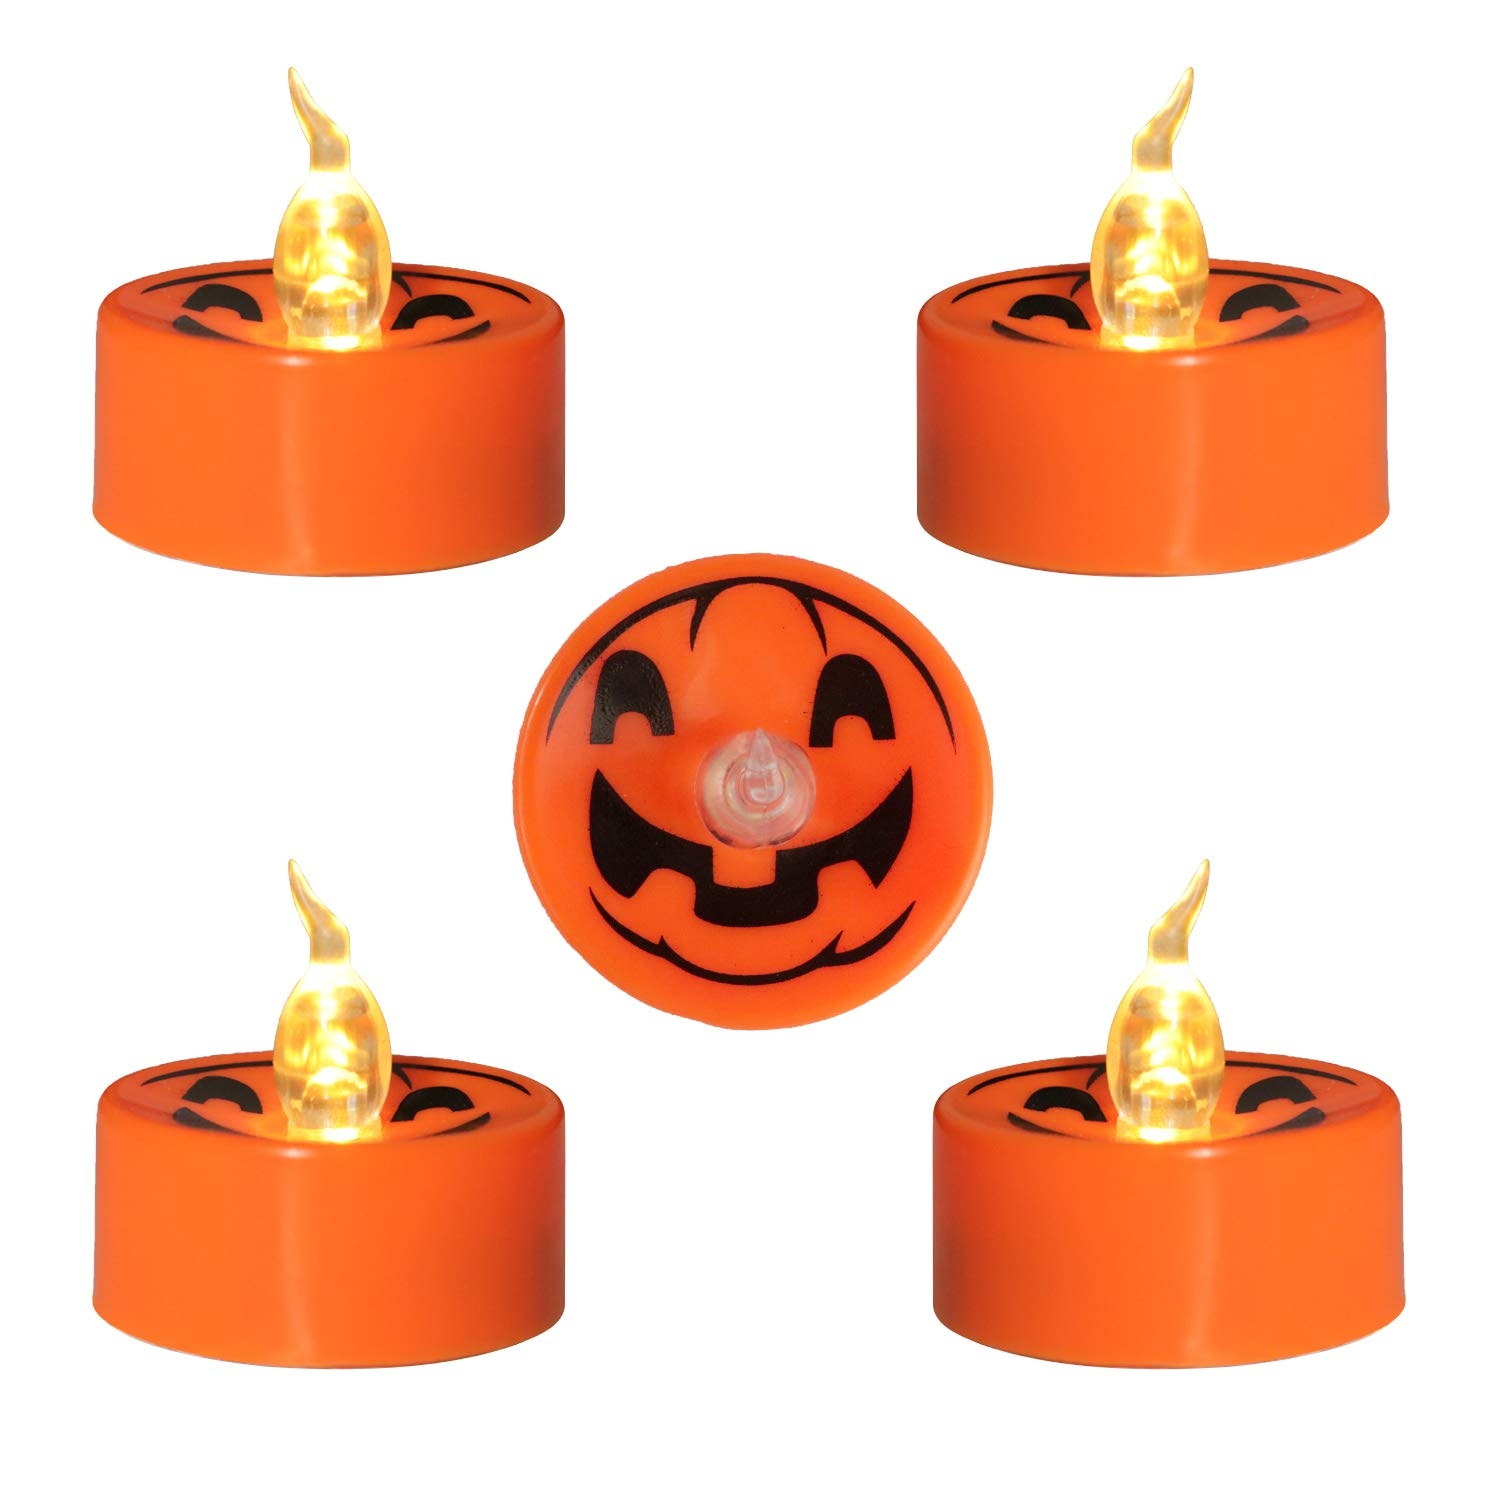 Youngerbaby 12 Pack Orange Halloween Candles Battery Operated for Pumpkin Lantern, Flickering LED Tea Light Indoor Outdoor Home Party Decoration 1.4 Inch Tealight Holiday